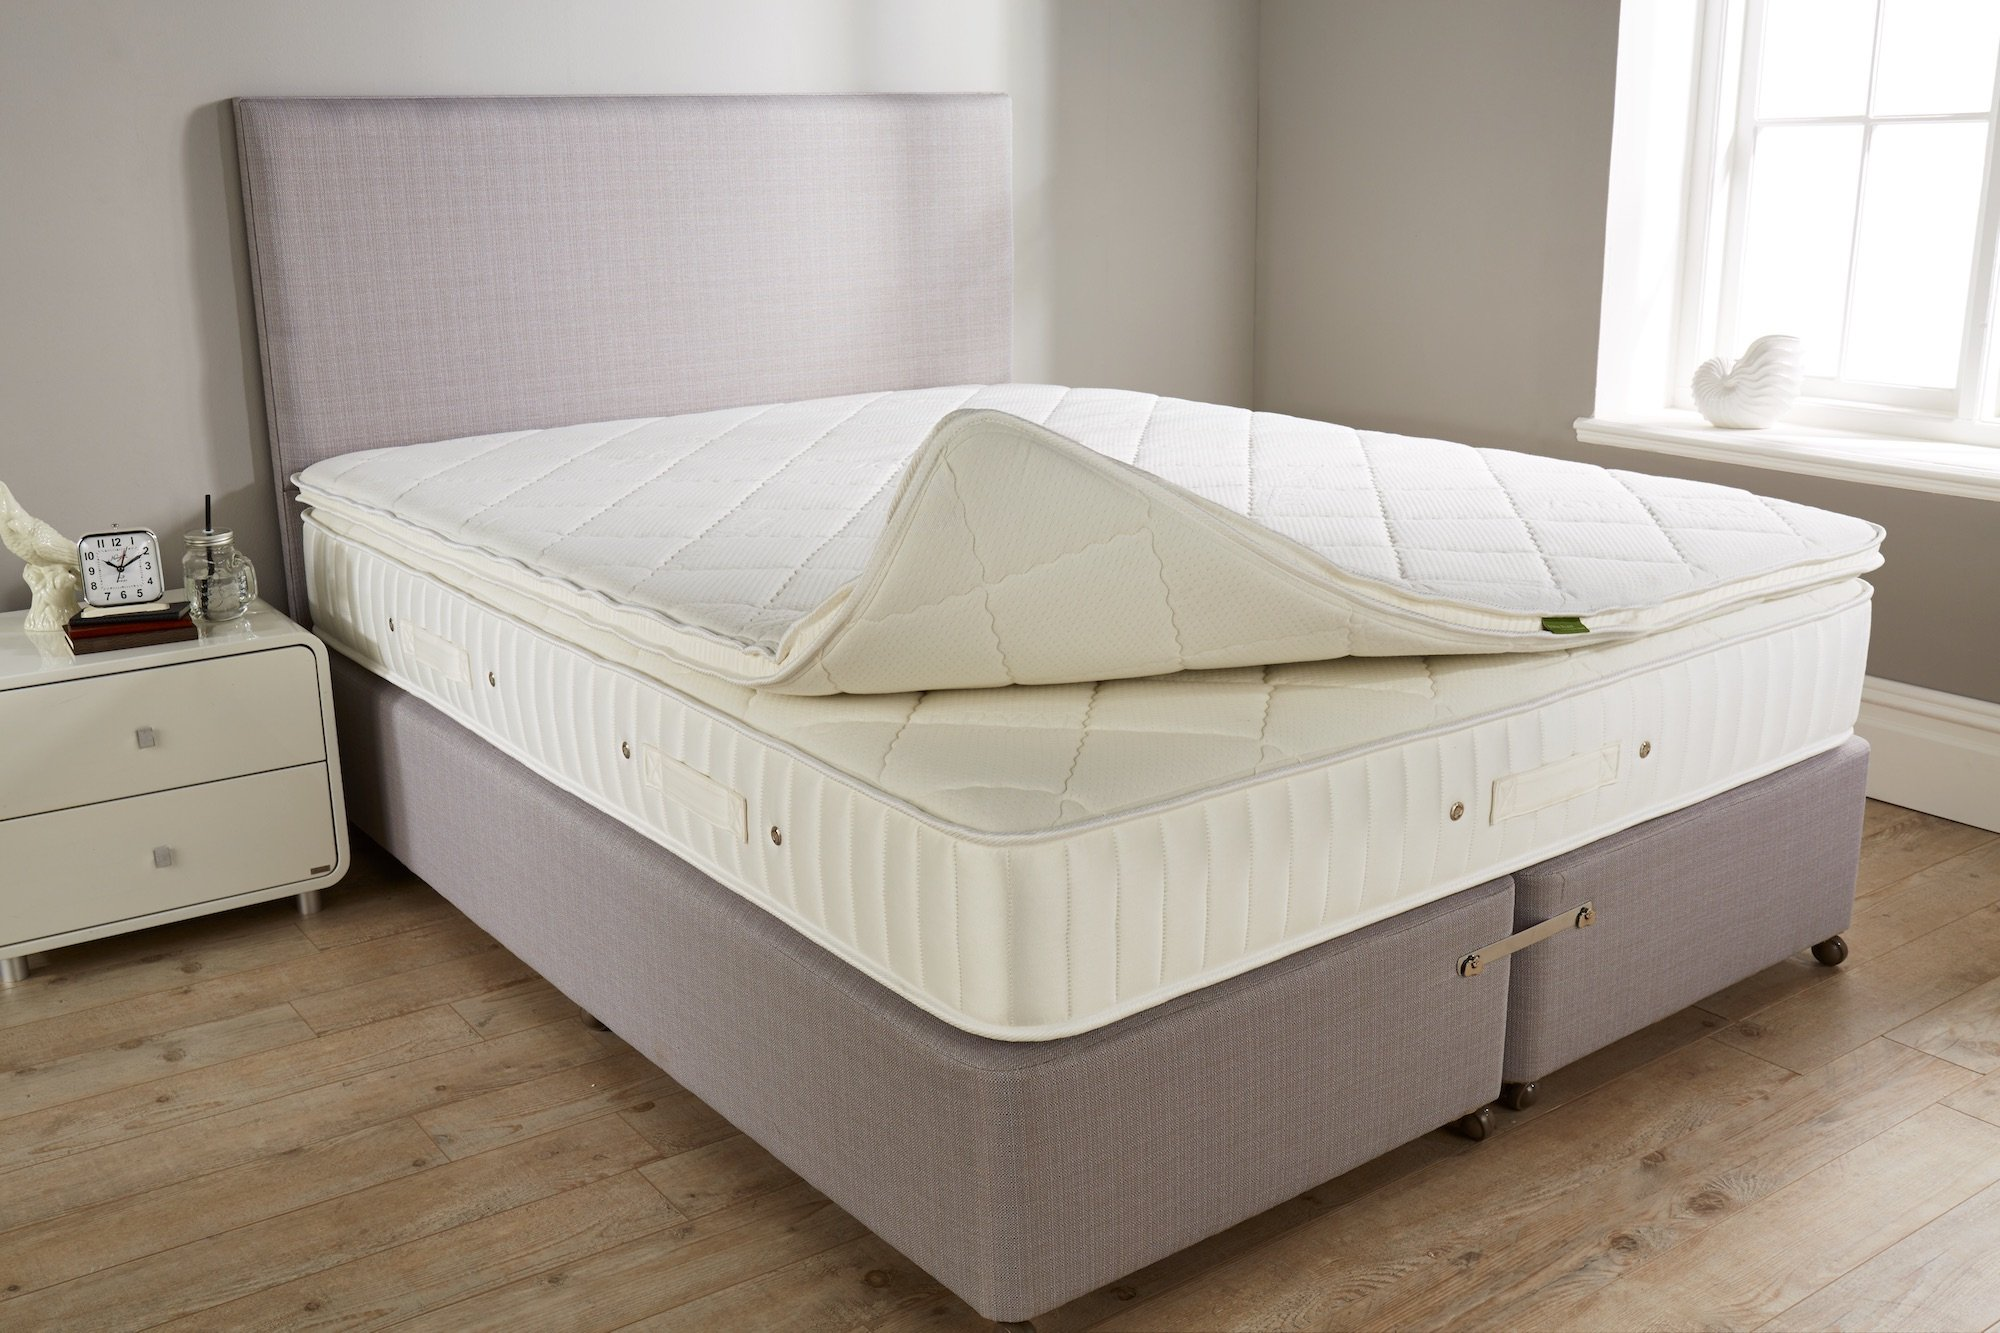 Toppers can only soften and not firm up an existing mattress